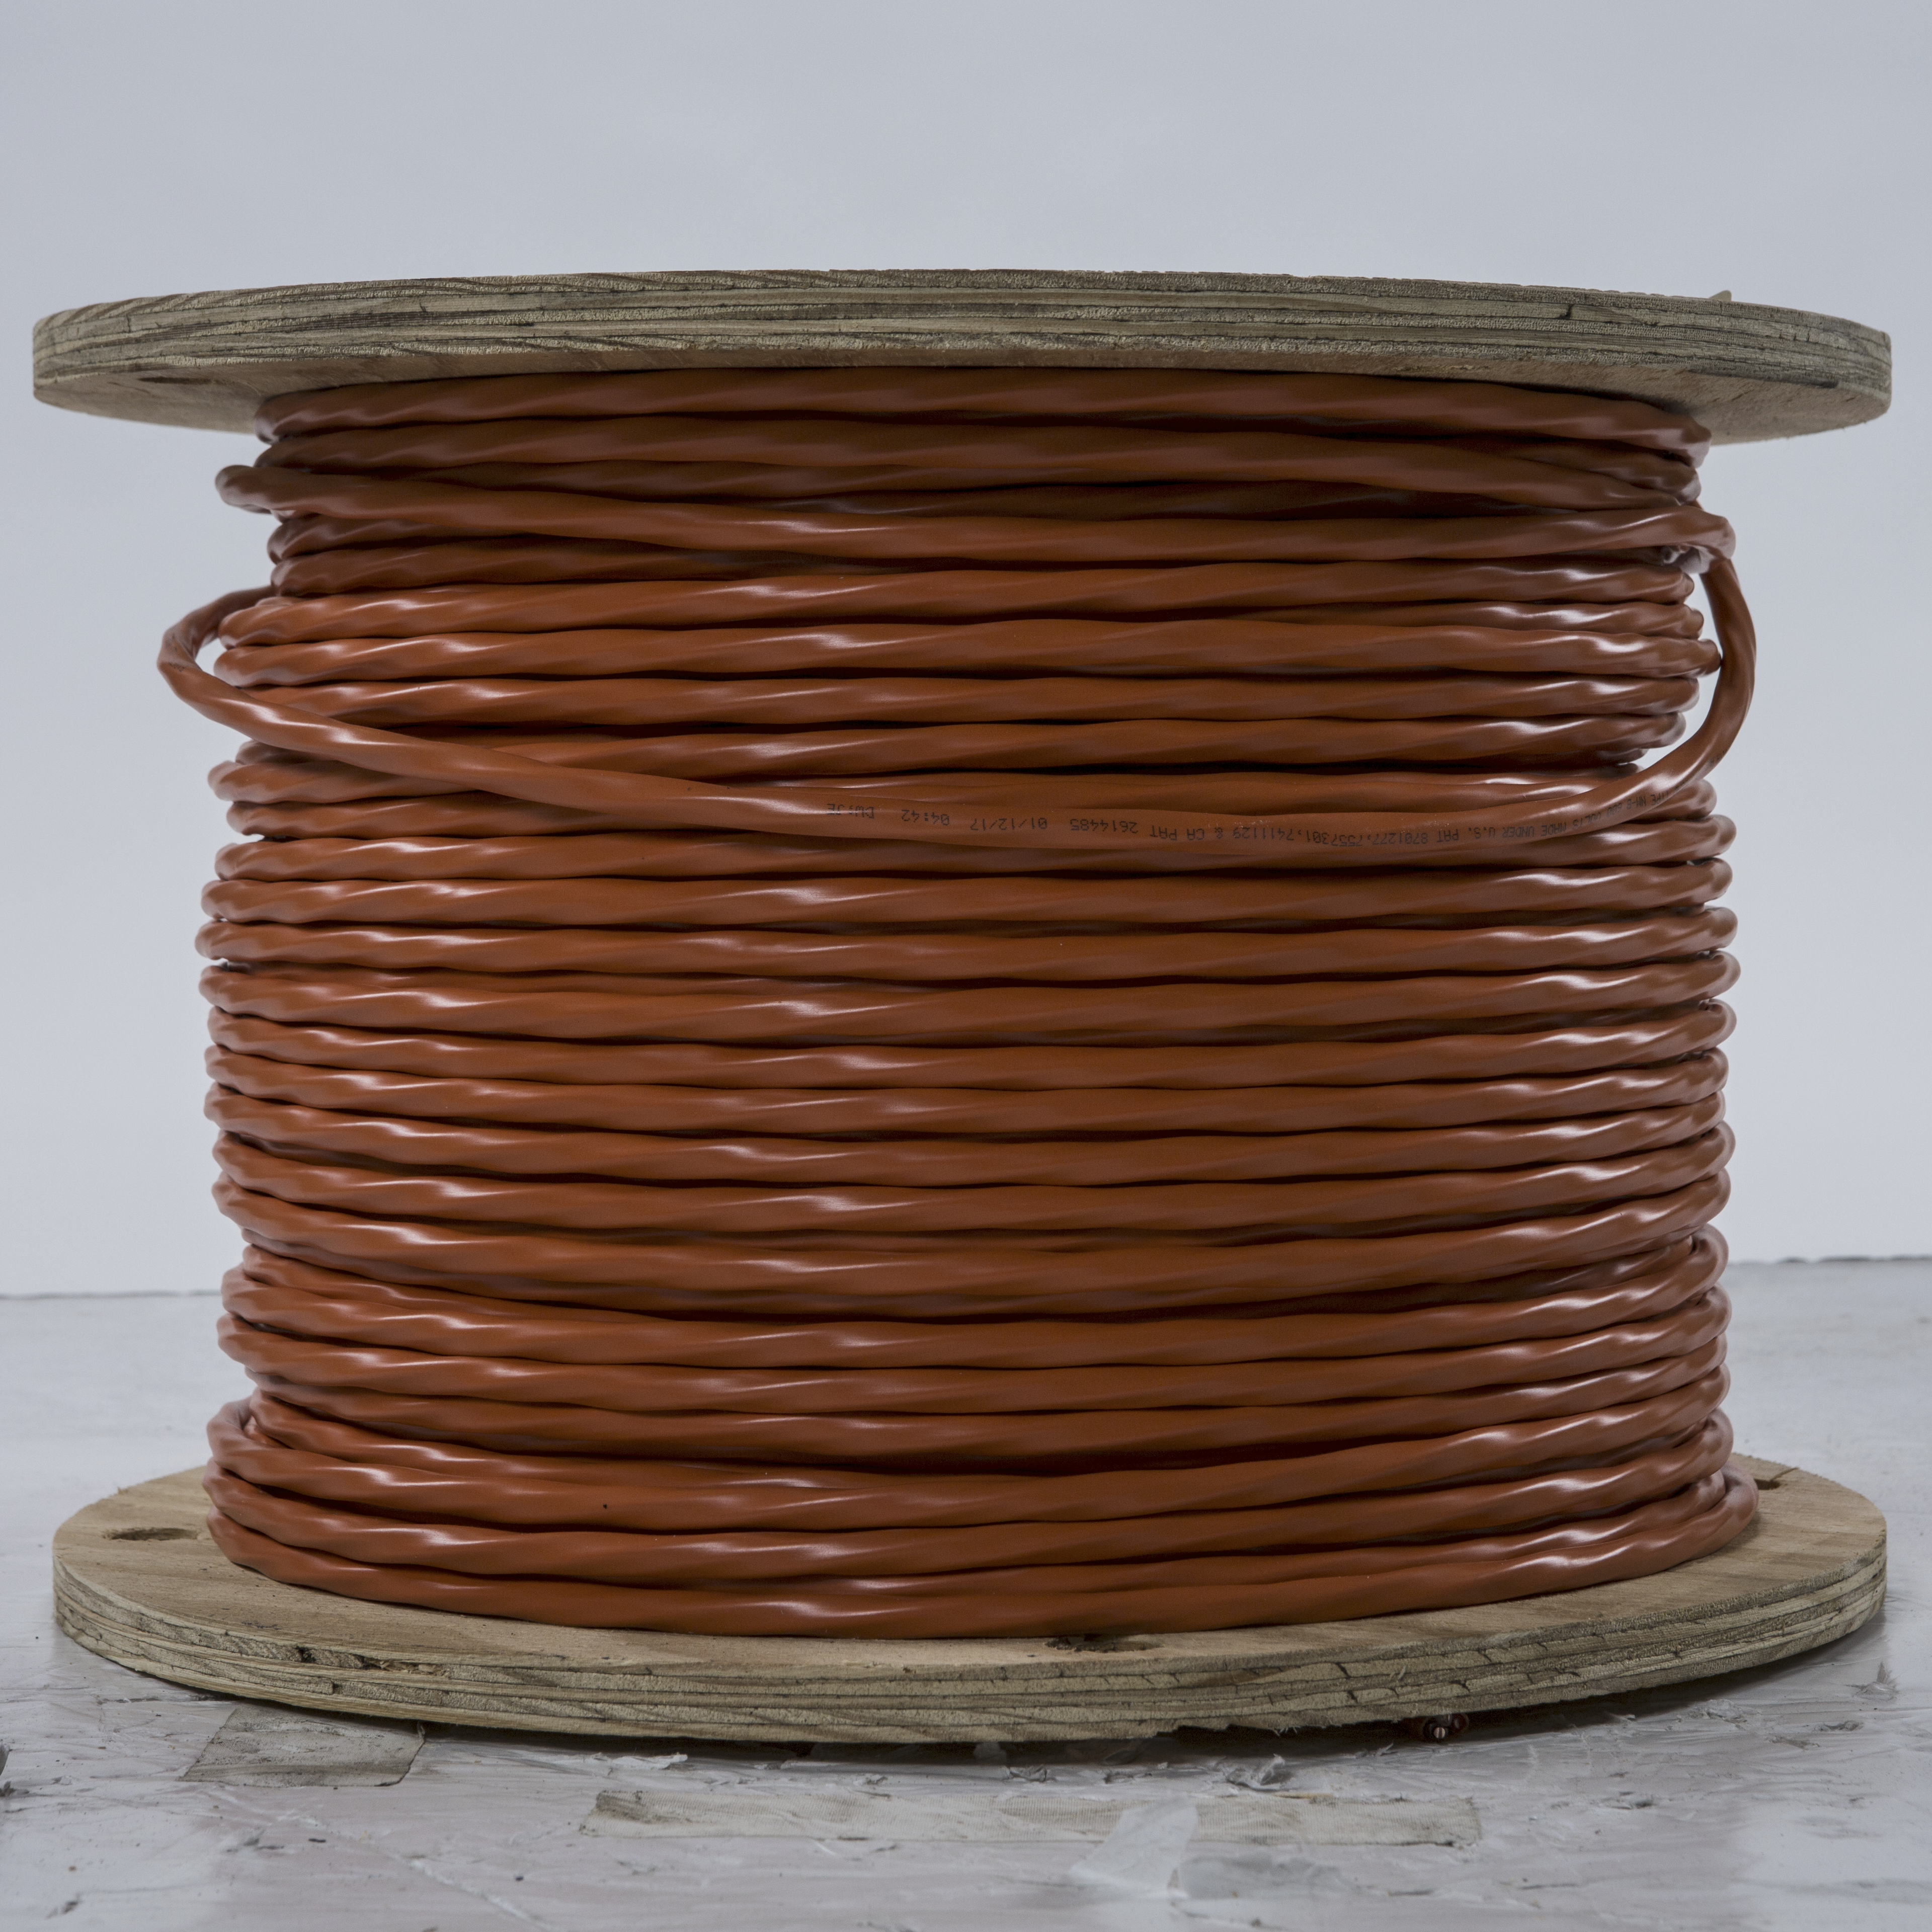 Wire & Cable CUNMB 10/3 W/GRD 1000' REEL